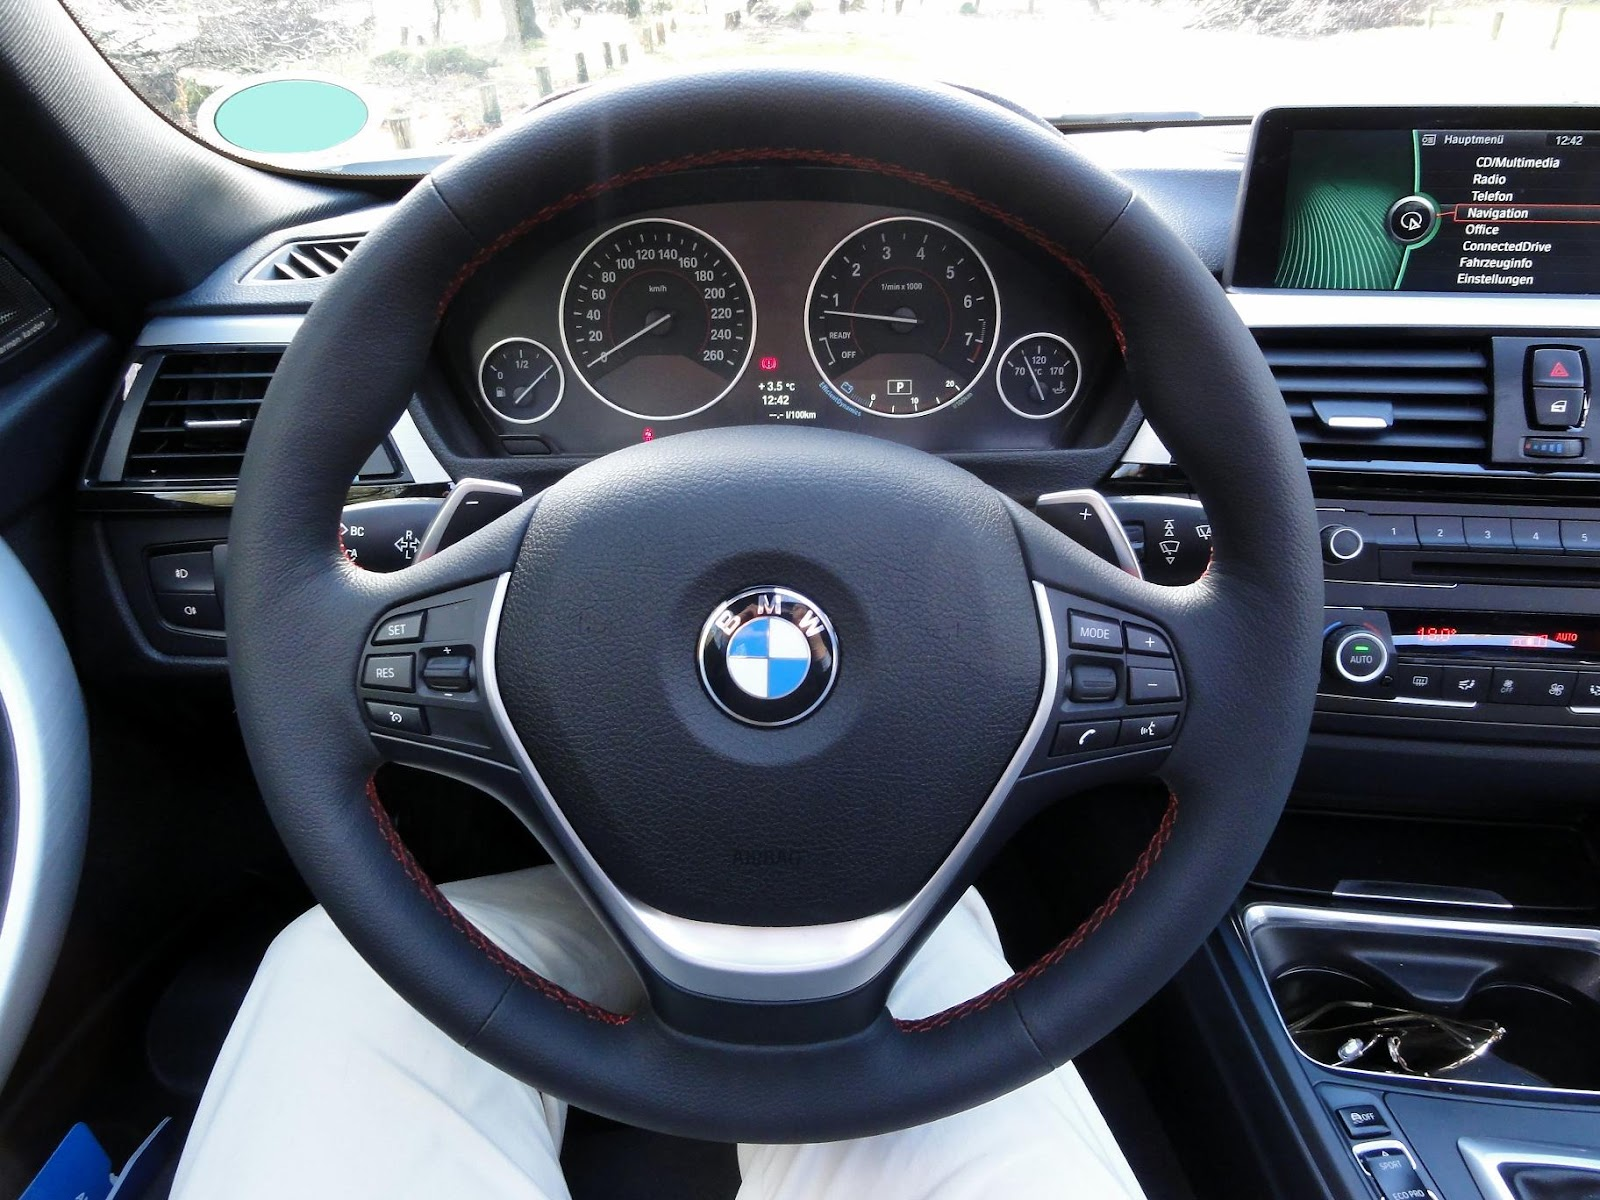 guitigefilmpjes car review bmw 335i sport line 2013 f30. Black Bedroom Furniture Sets. Home Design Ideas